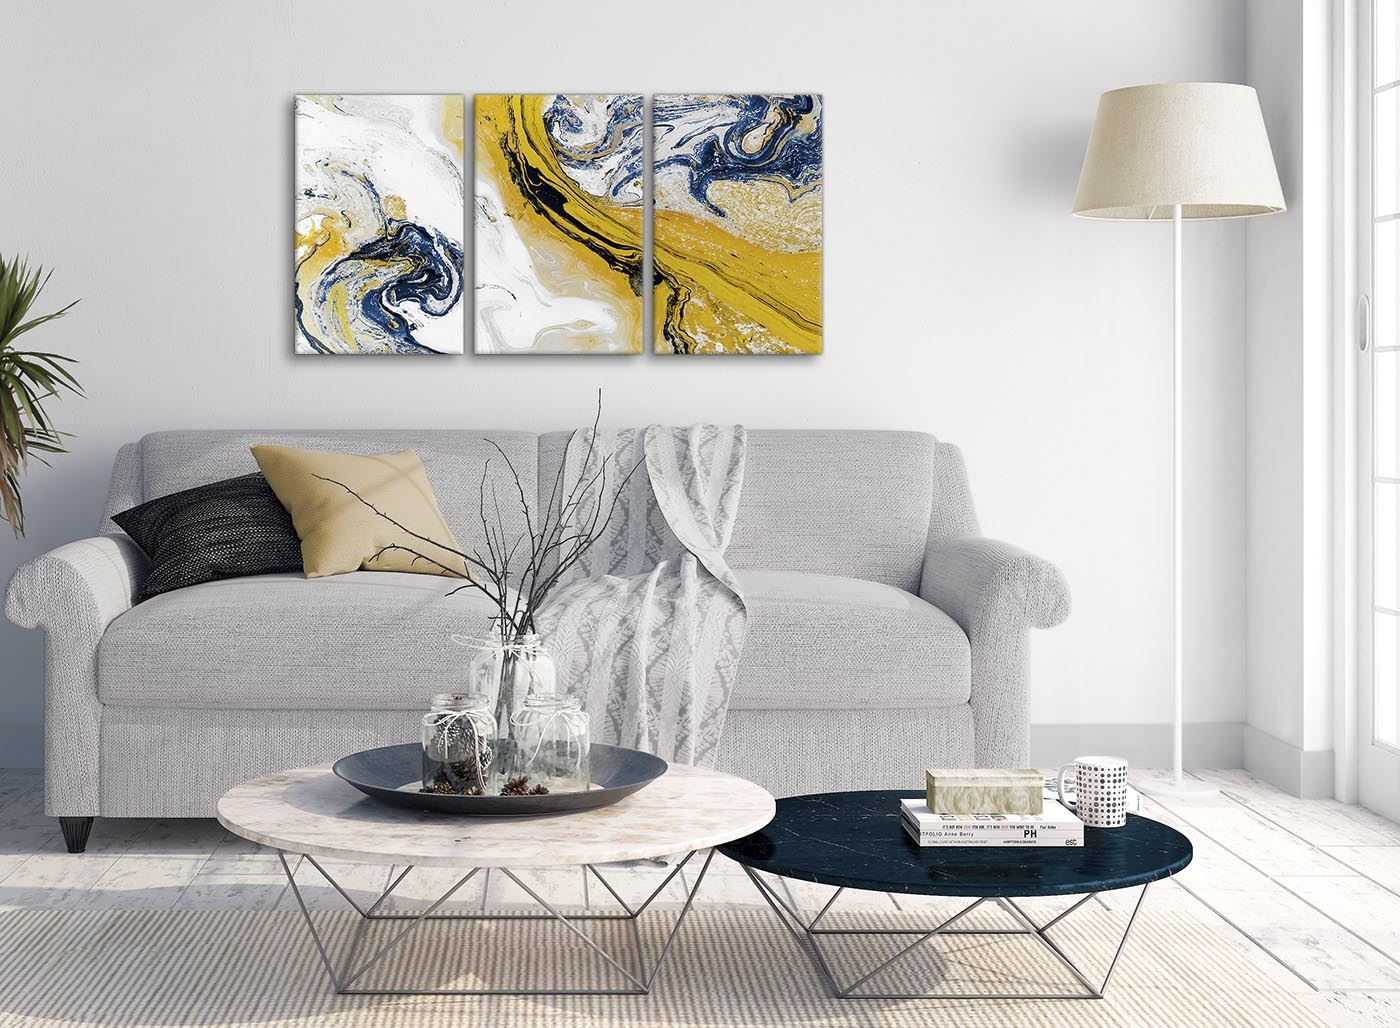 Details About Mustard Yellow And Blue Swirl Living Room Canvas Pictures Abstract Print